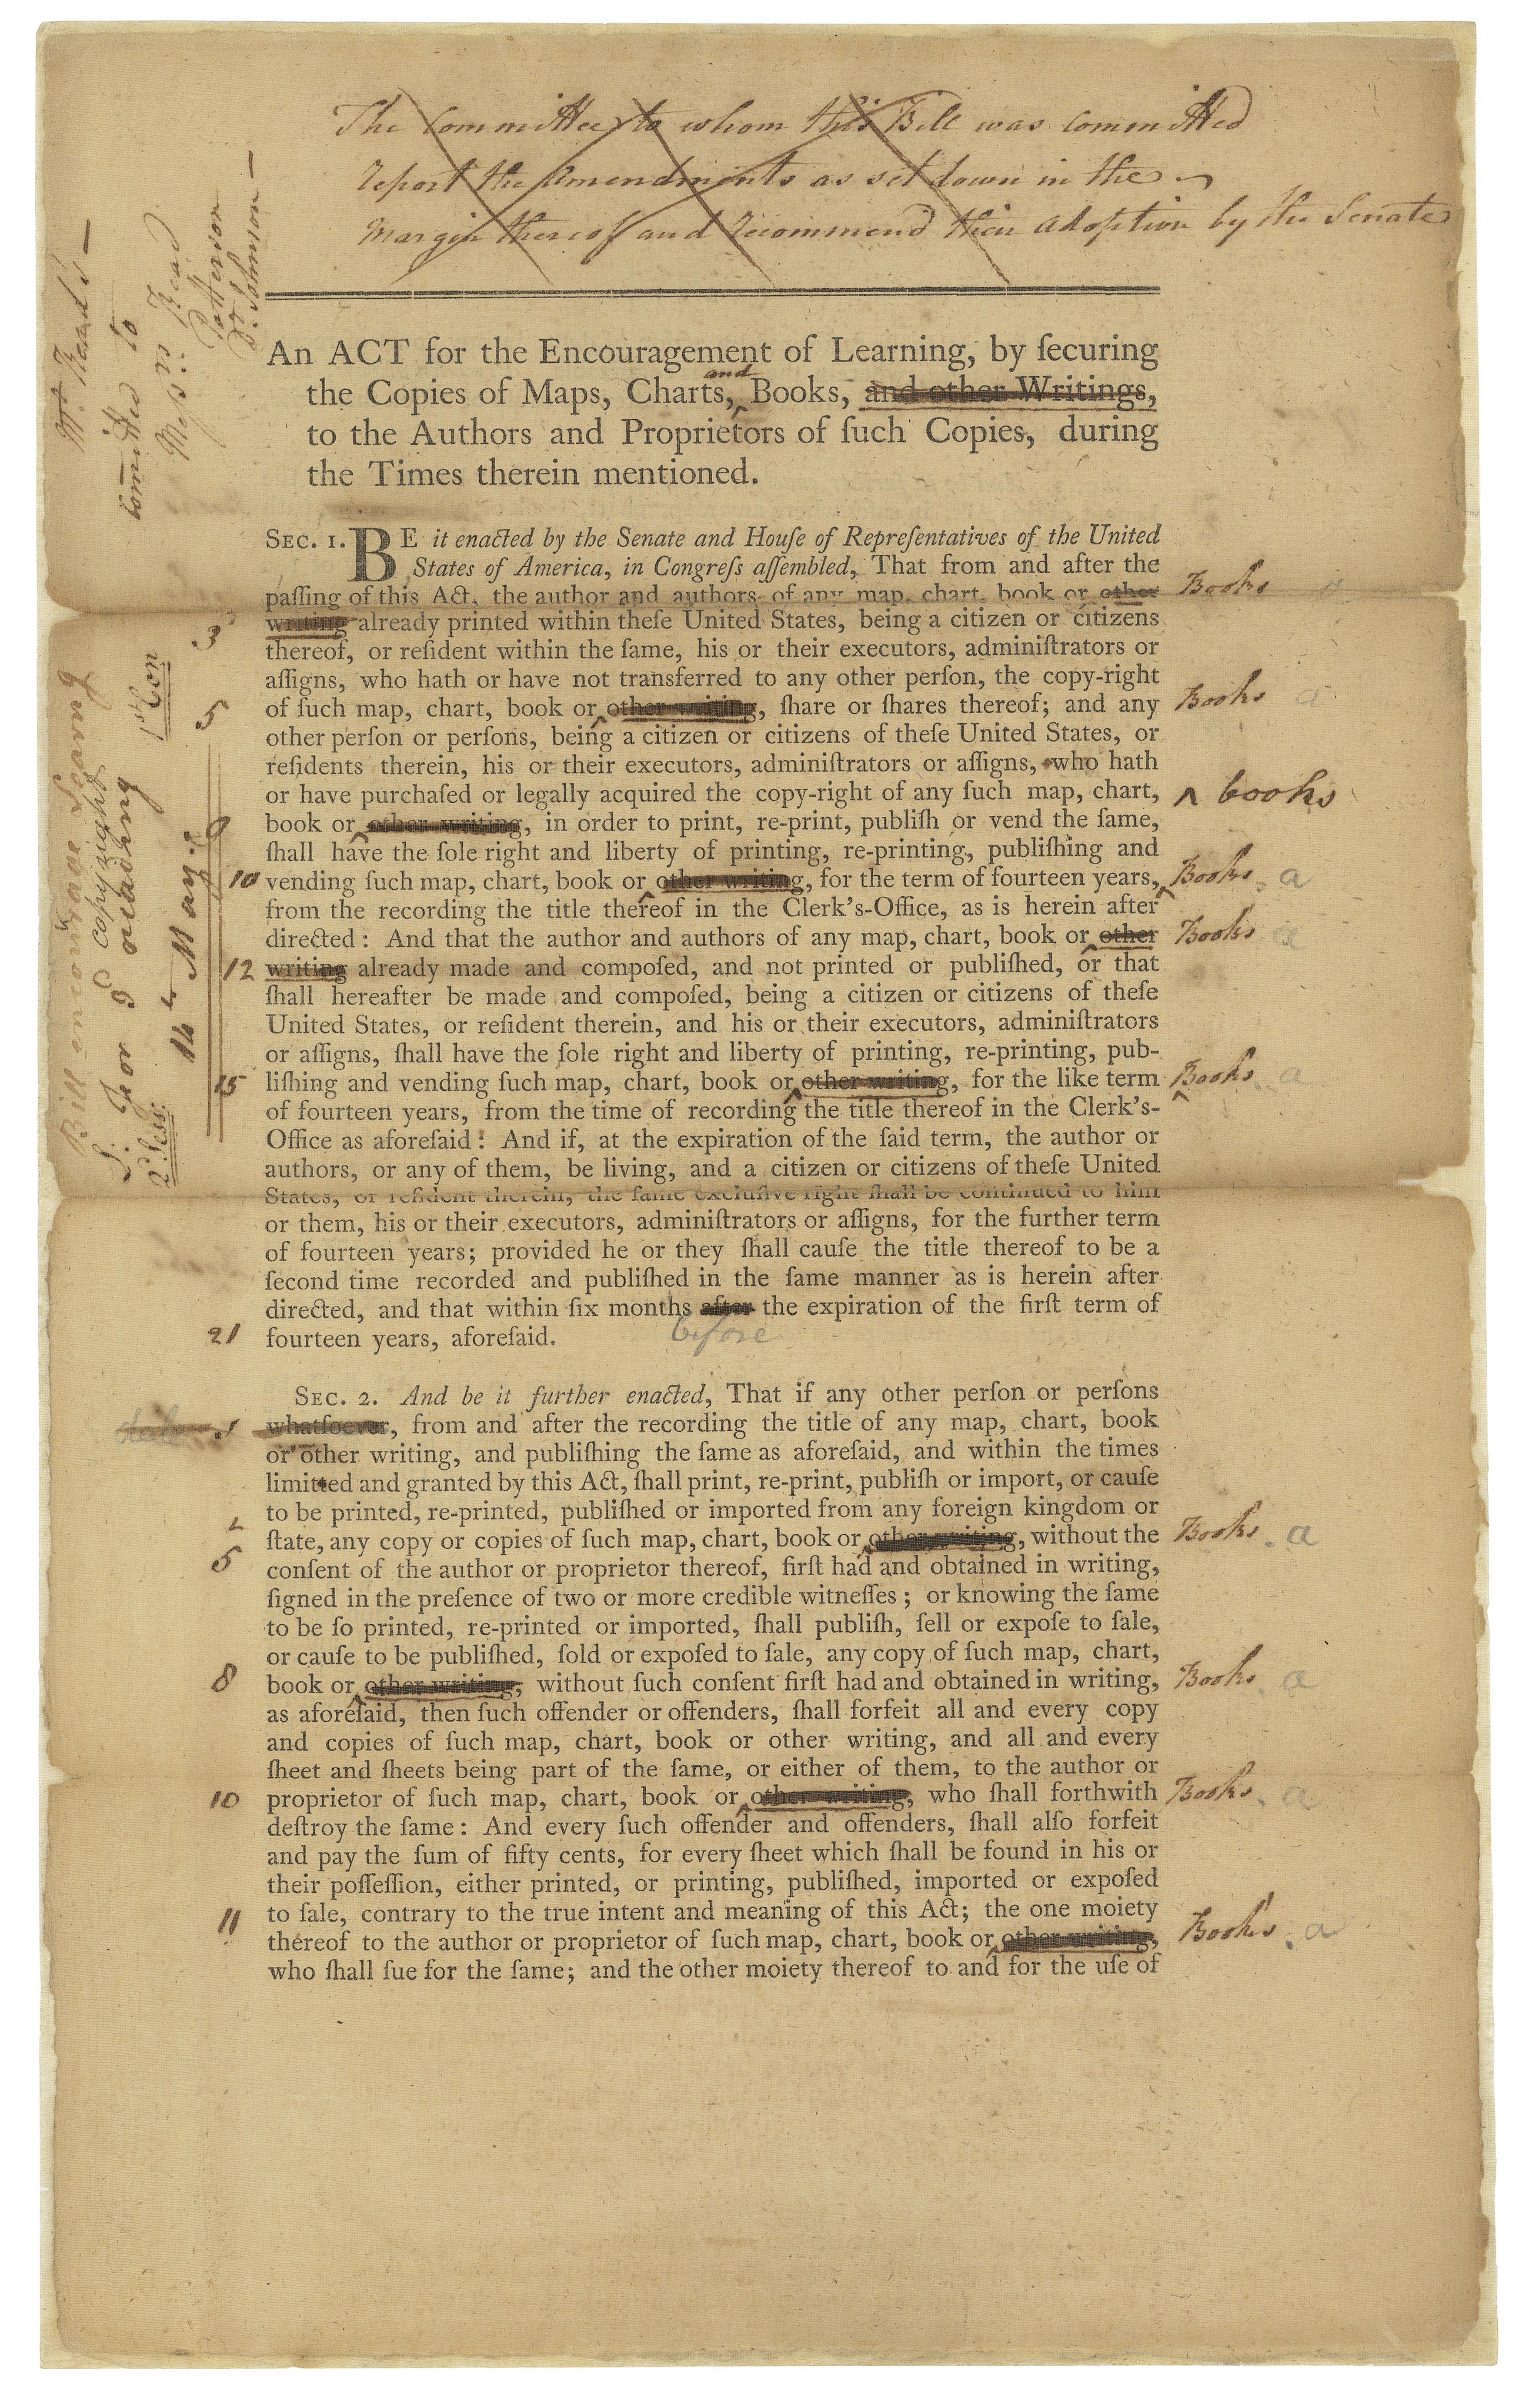 Copyright Act of 1790, bill version. (Records of the U.S. Senate, National Archives)